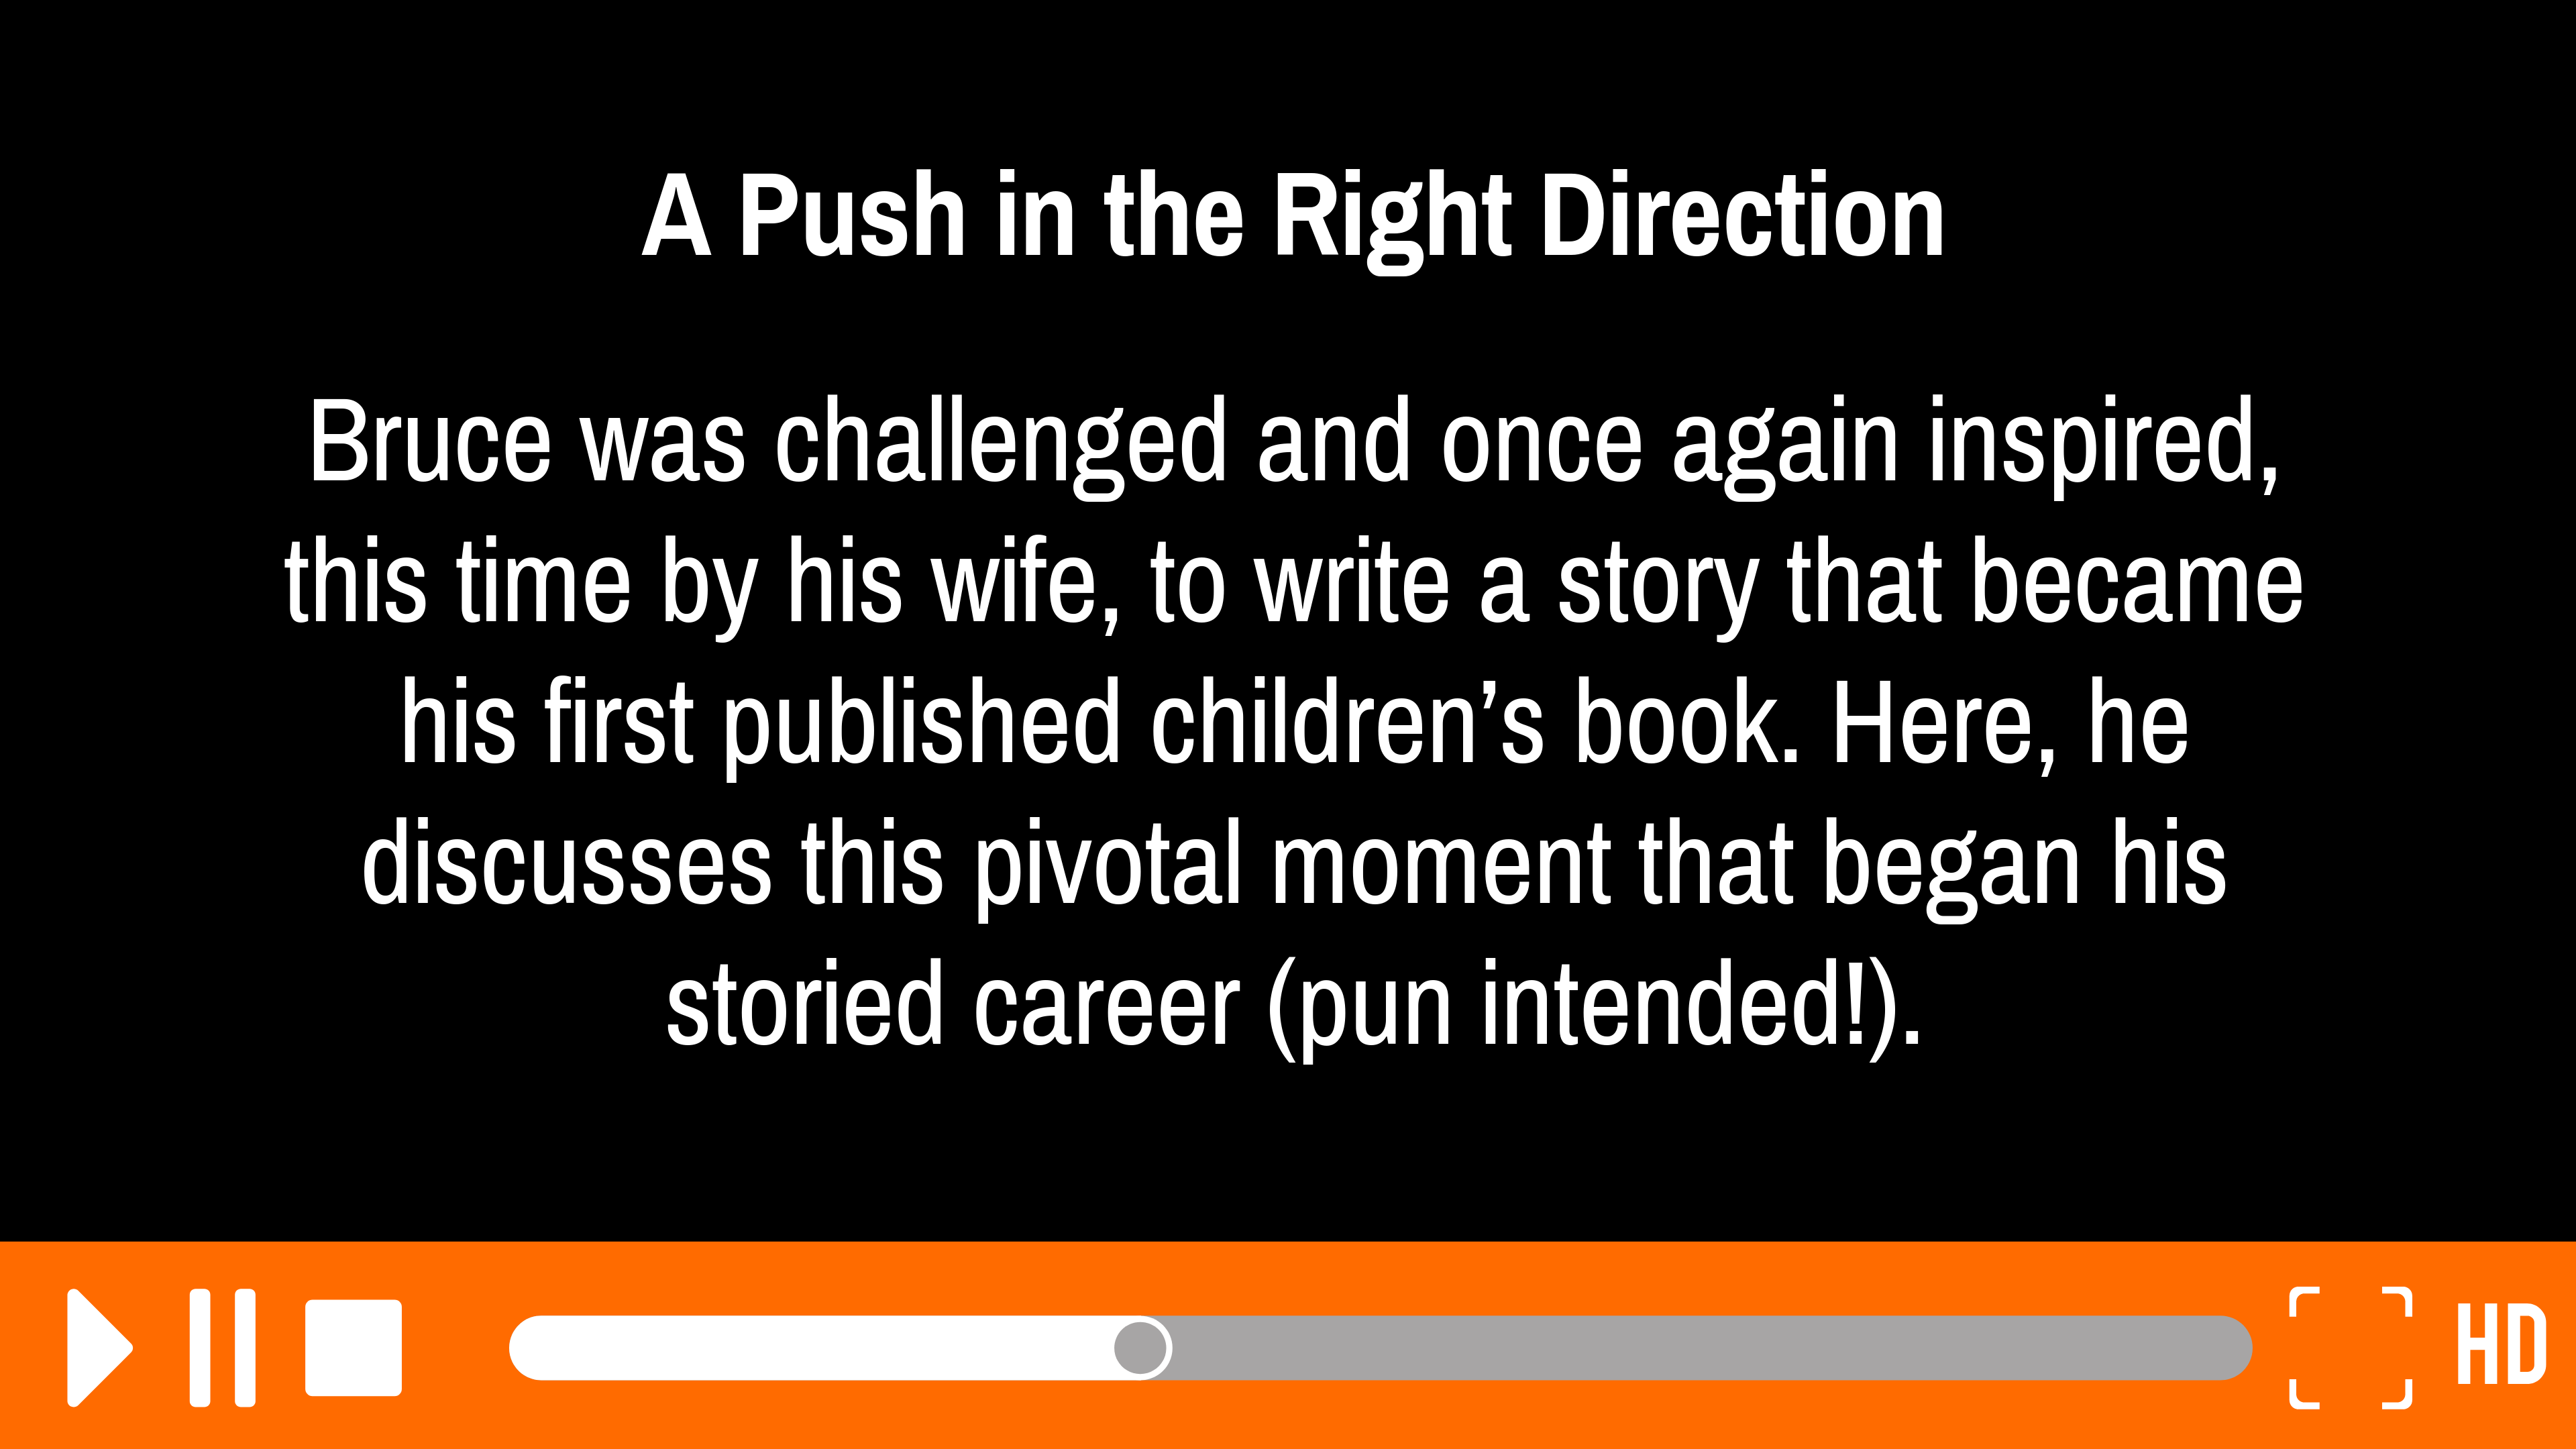 A Push in the Right Direction: 4 of 7